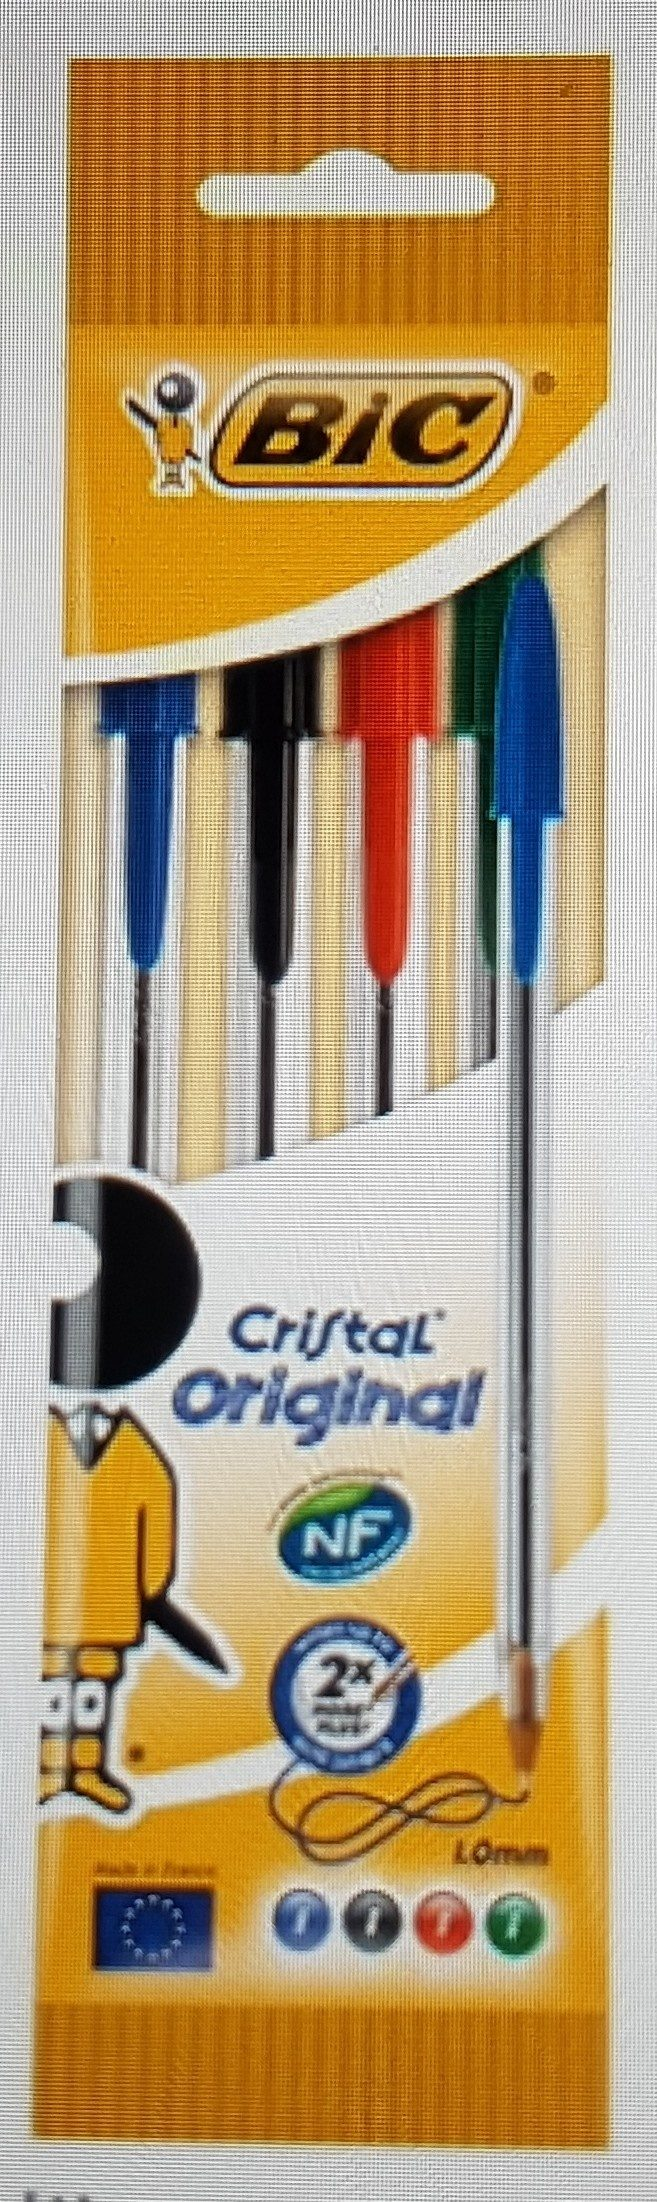 Cristal Multicolore - Product - fr